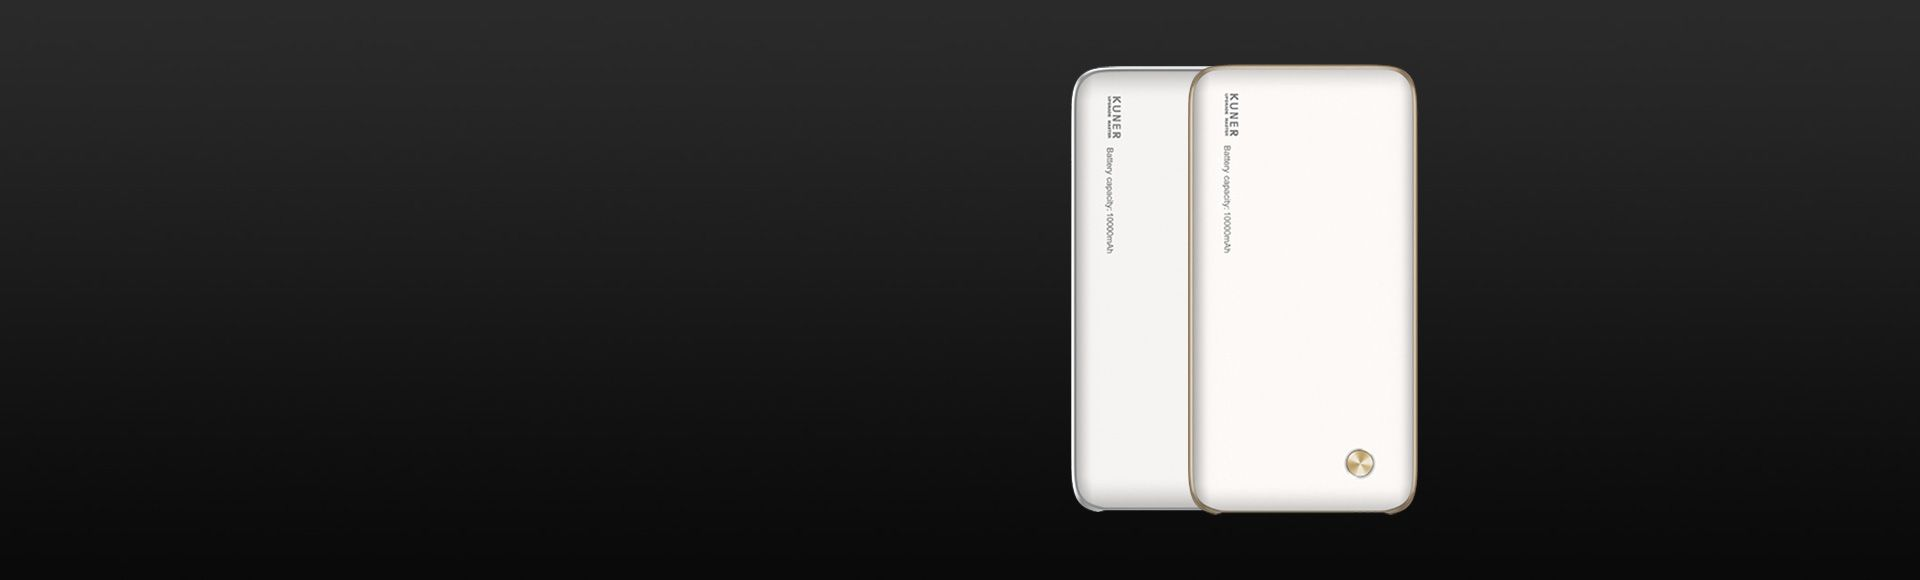 Kuner Smart Power Bank 10000mAh - Extended Internal Memory External Battery Charger Support 2GB-256GB TF Card VR Play Fits for Window iOS Android MacOS System